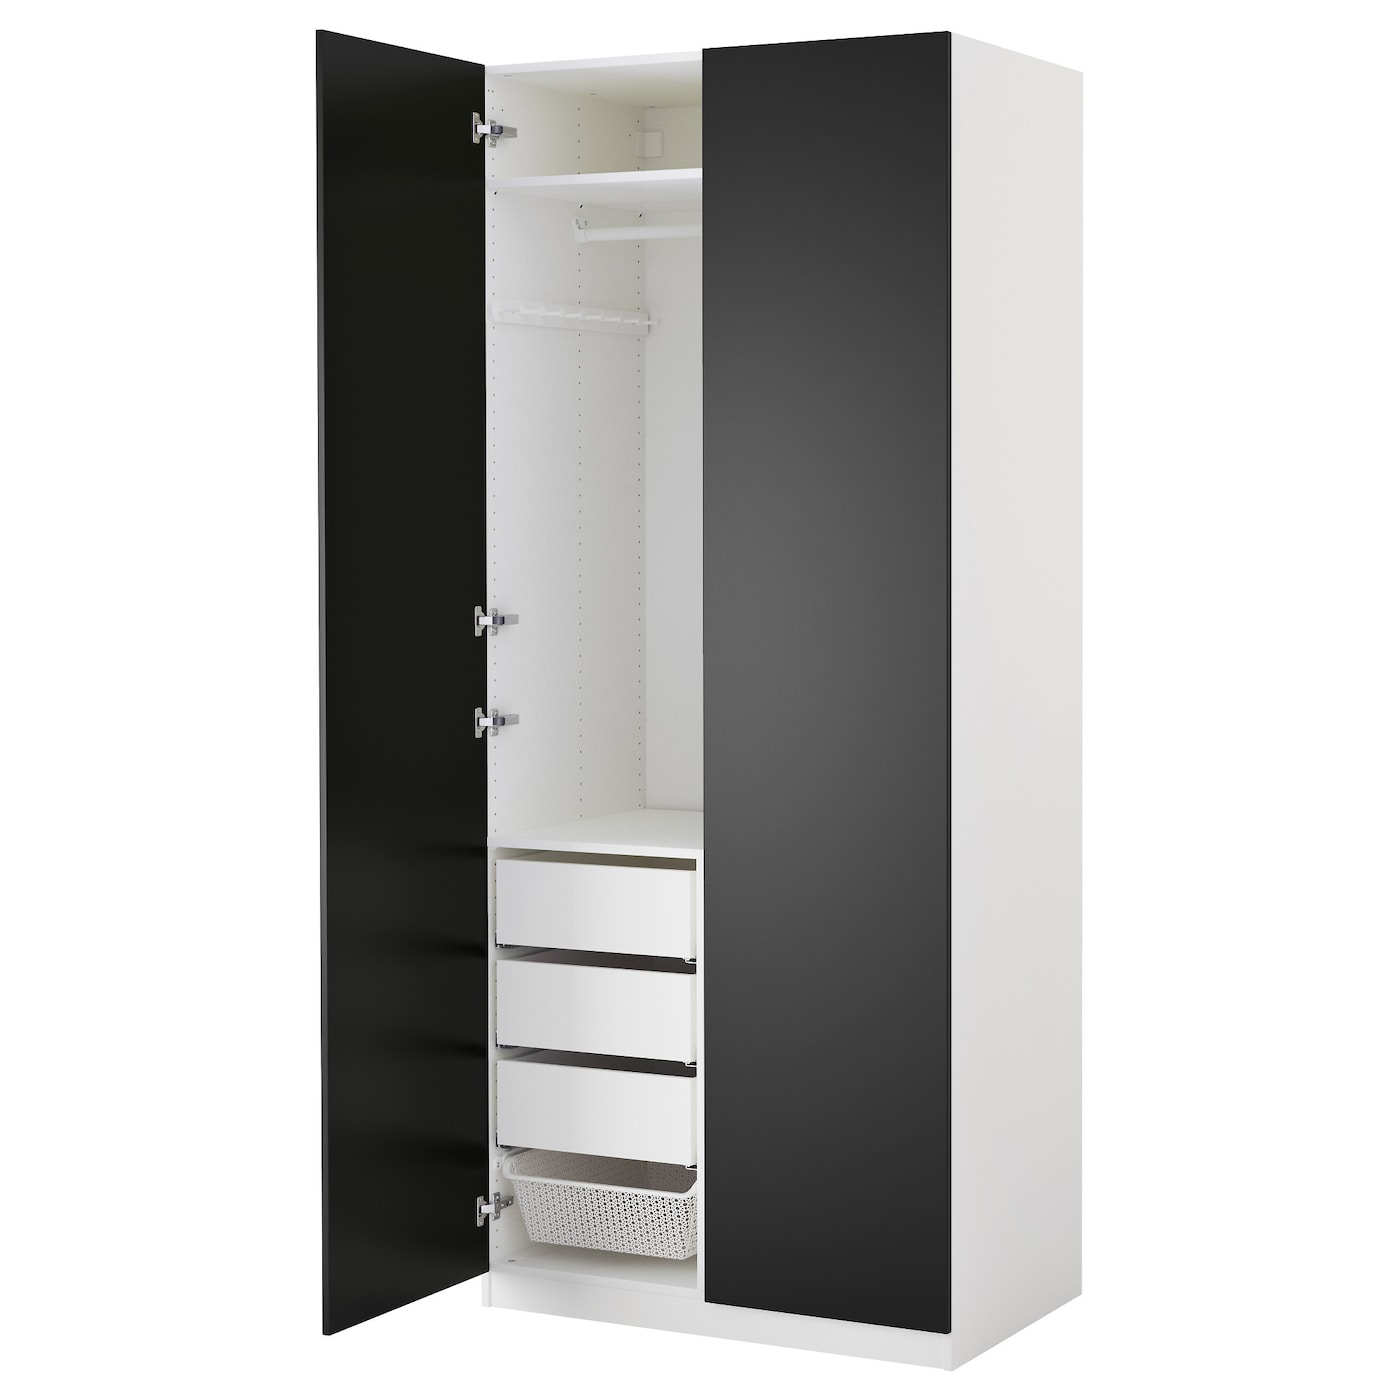 pax armoire penderie blanc tanem noir 100x60x236 cm ikea. Black Bedroom Furniture Sets. Home Design Ideas